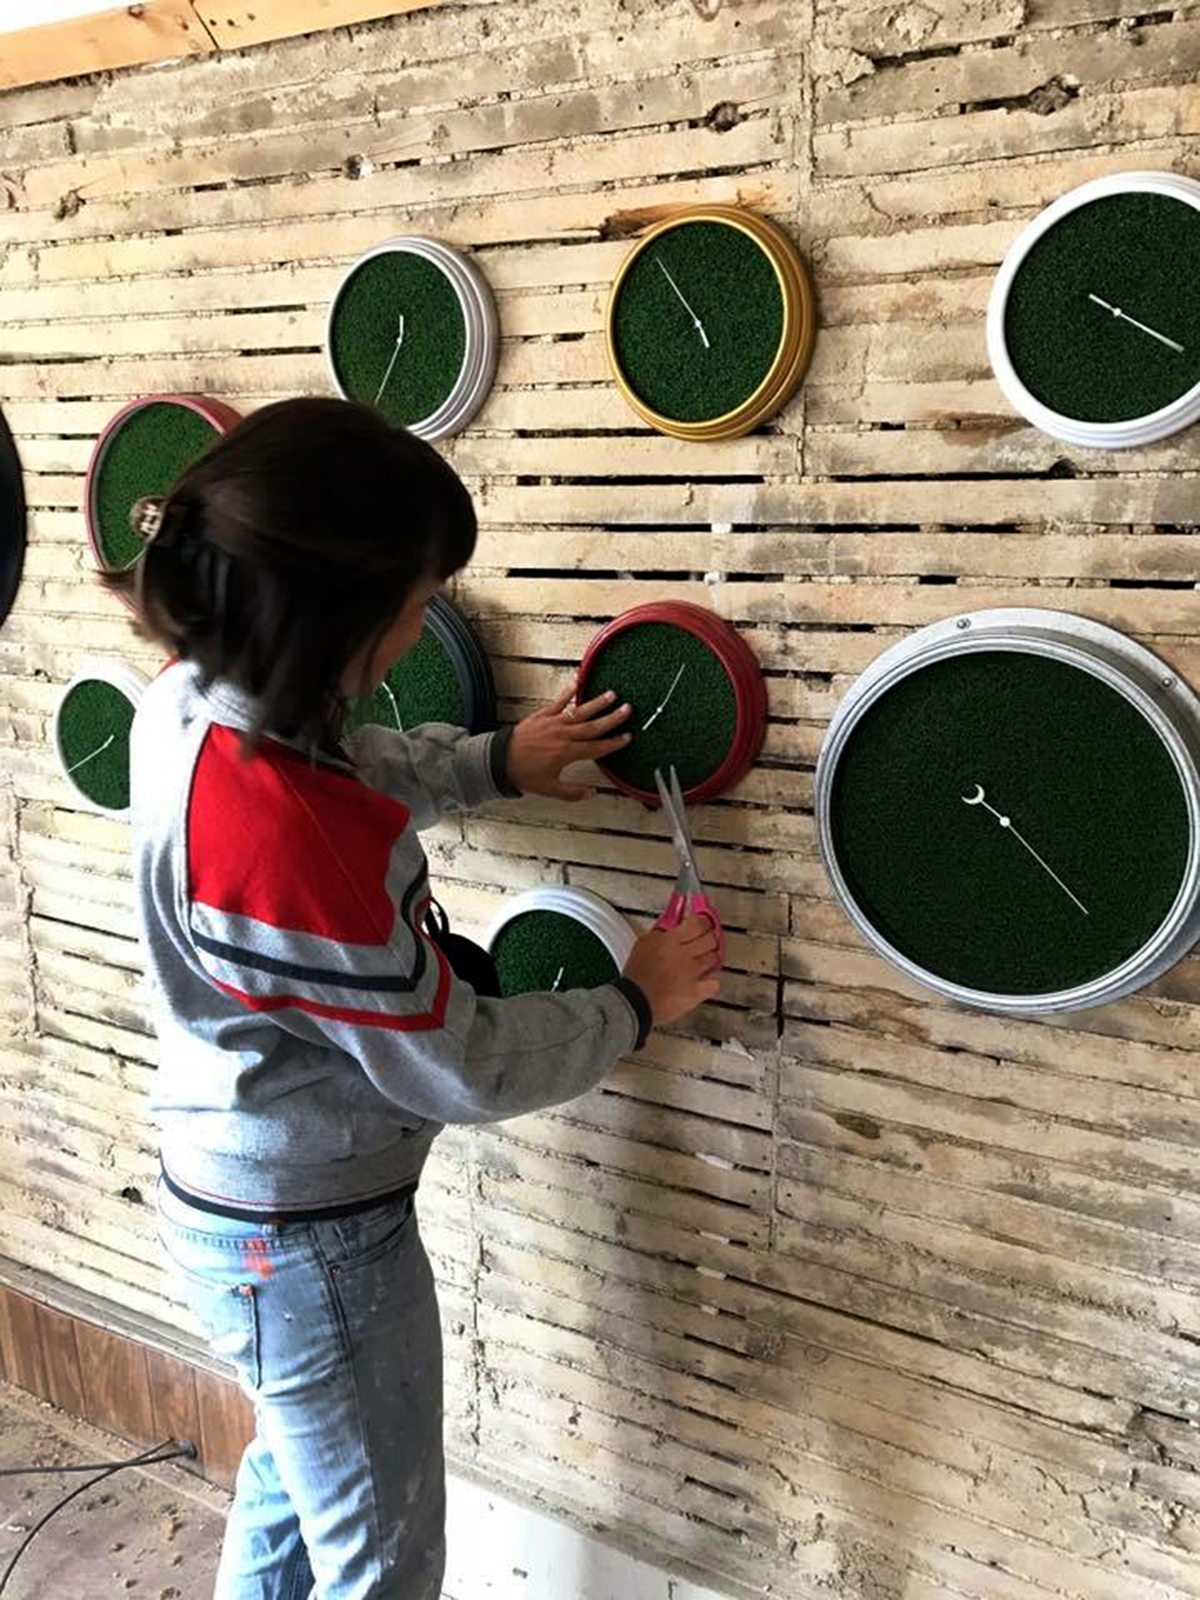 - This installation featured 30 functional clocks in various shapes and sizes that I modified with artificial grass.